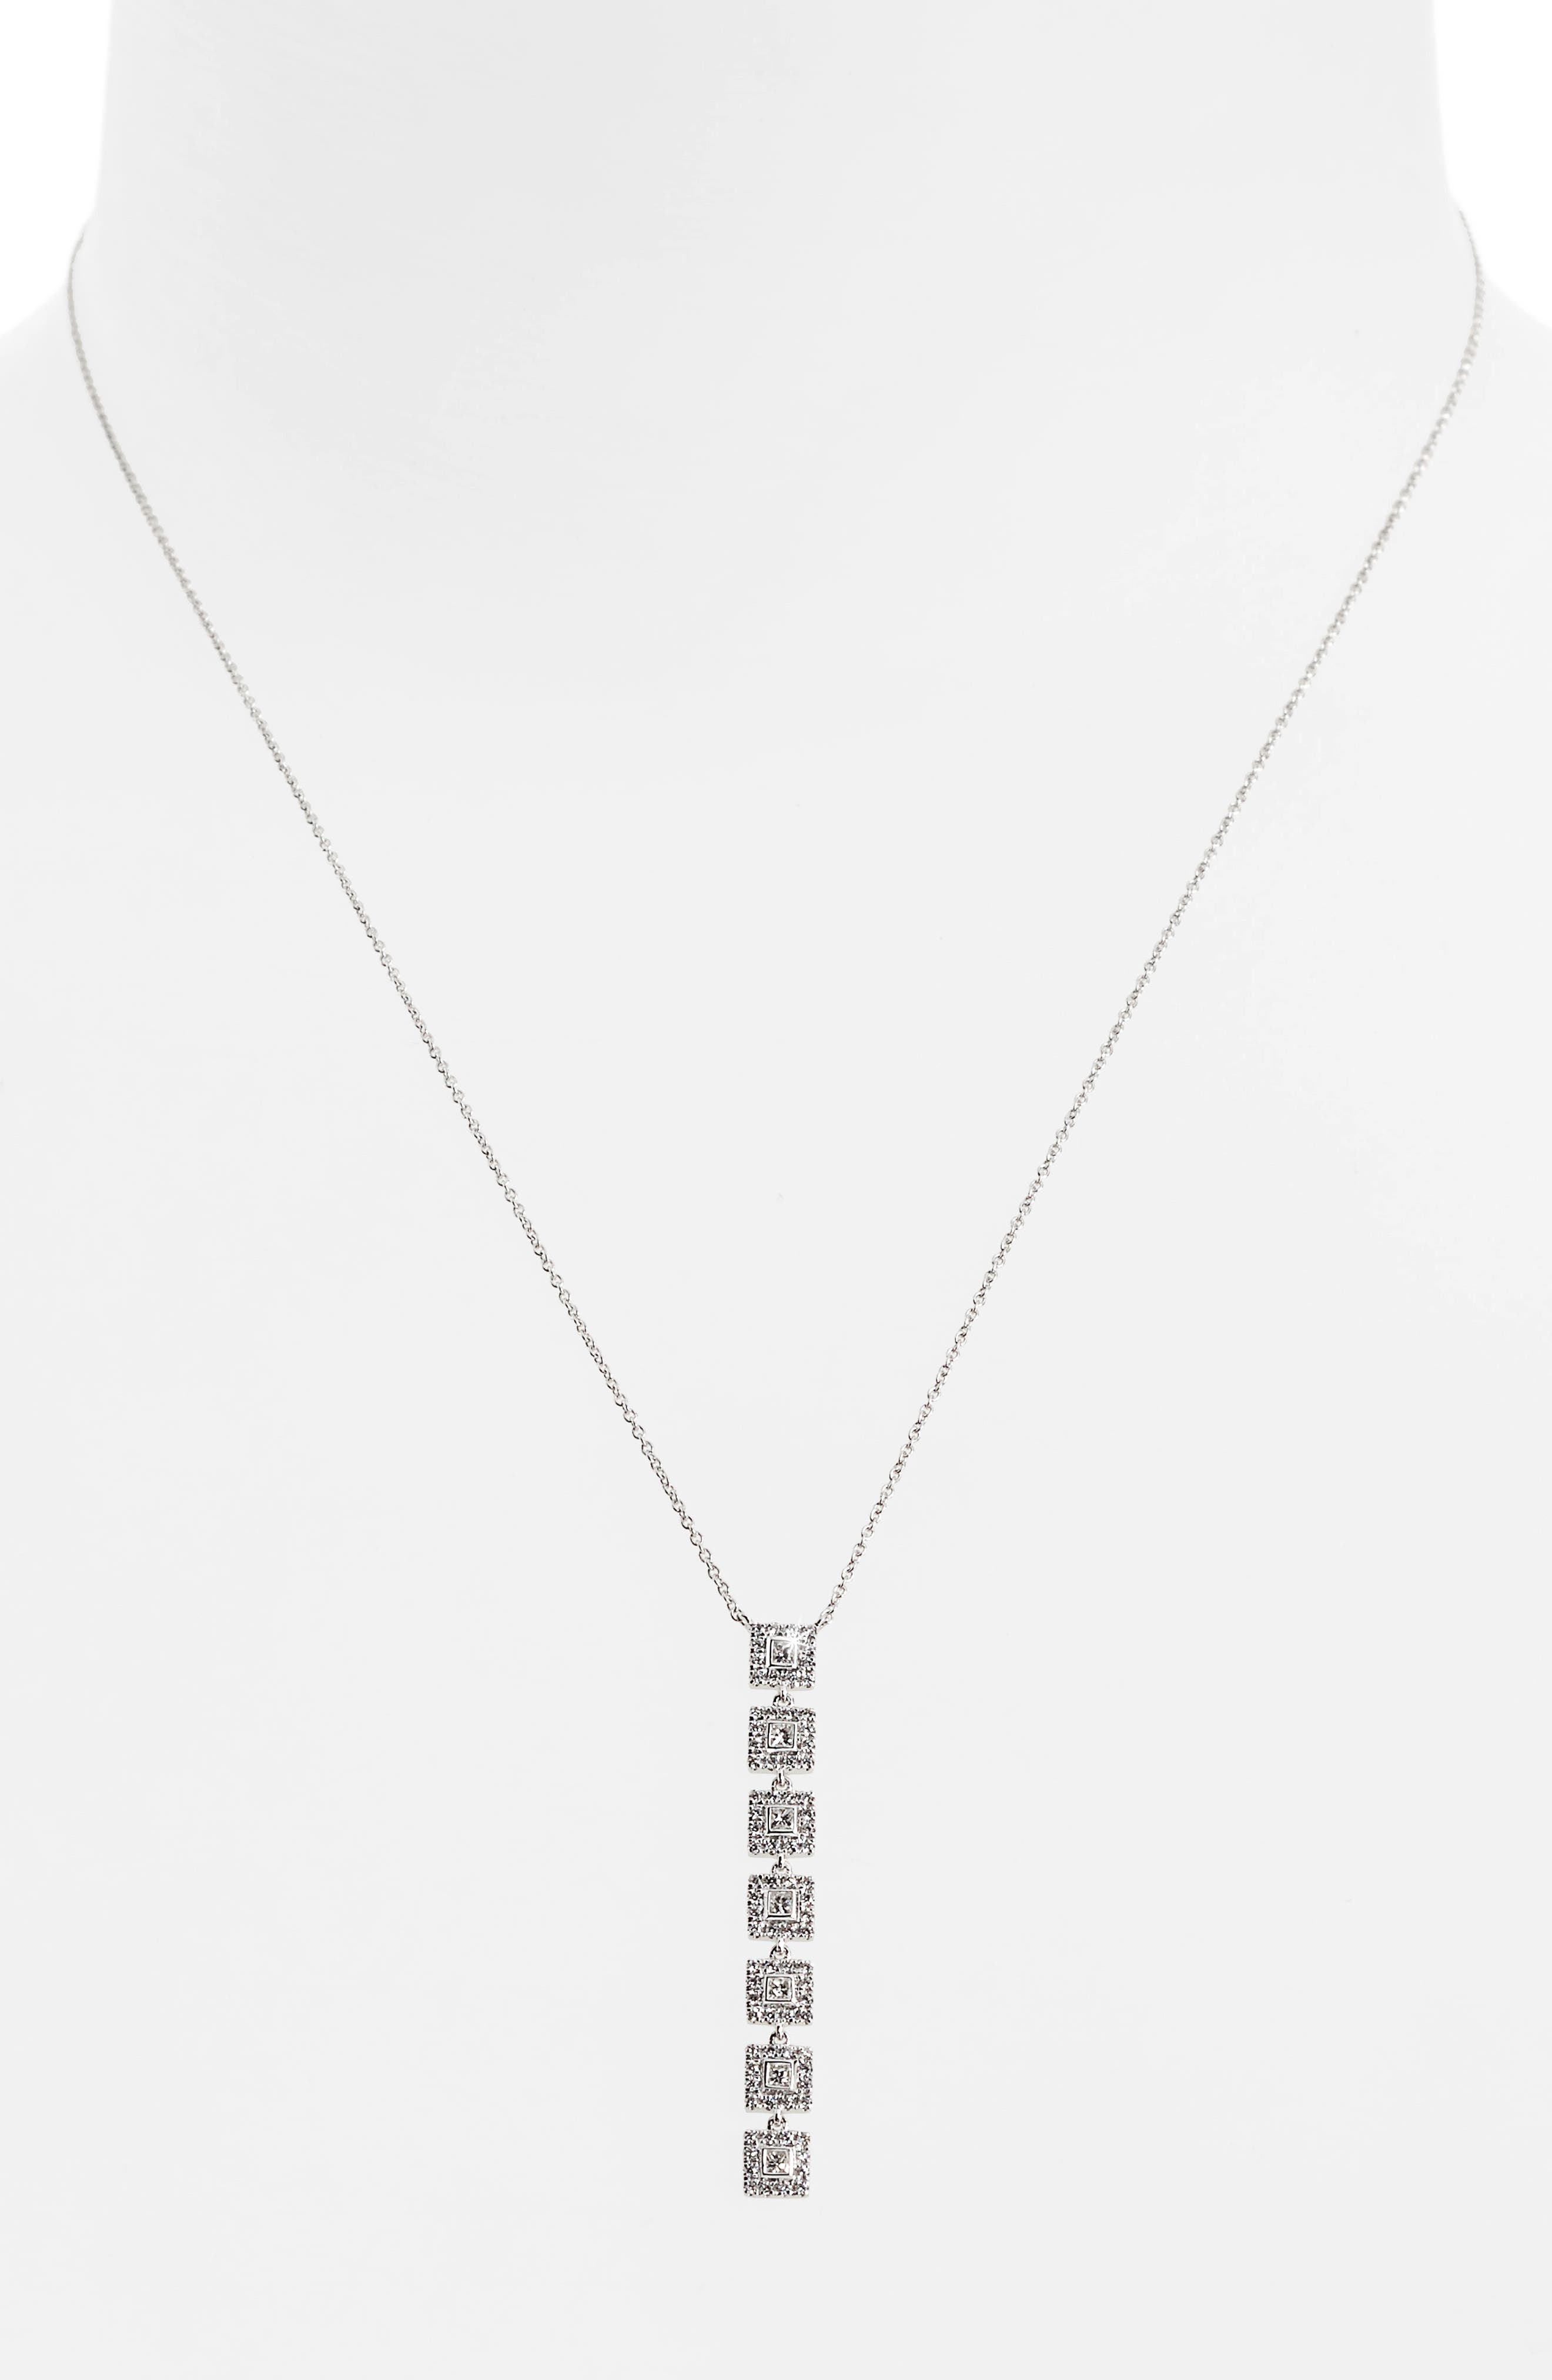 Amara Diamond Pendant Necklace,                             Alternate thumbnail 2, color,                             White Gold